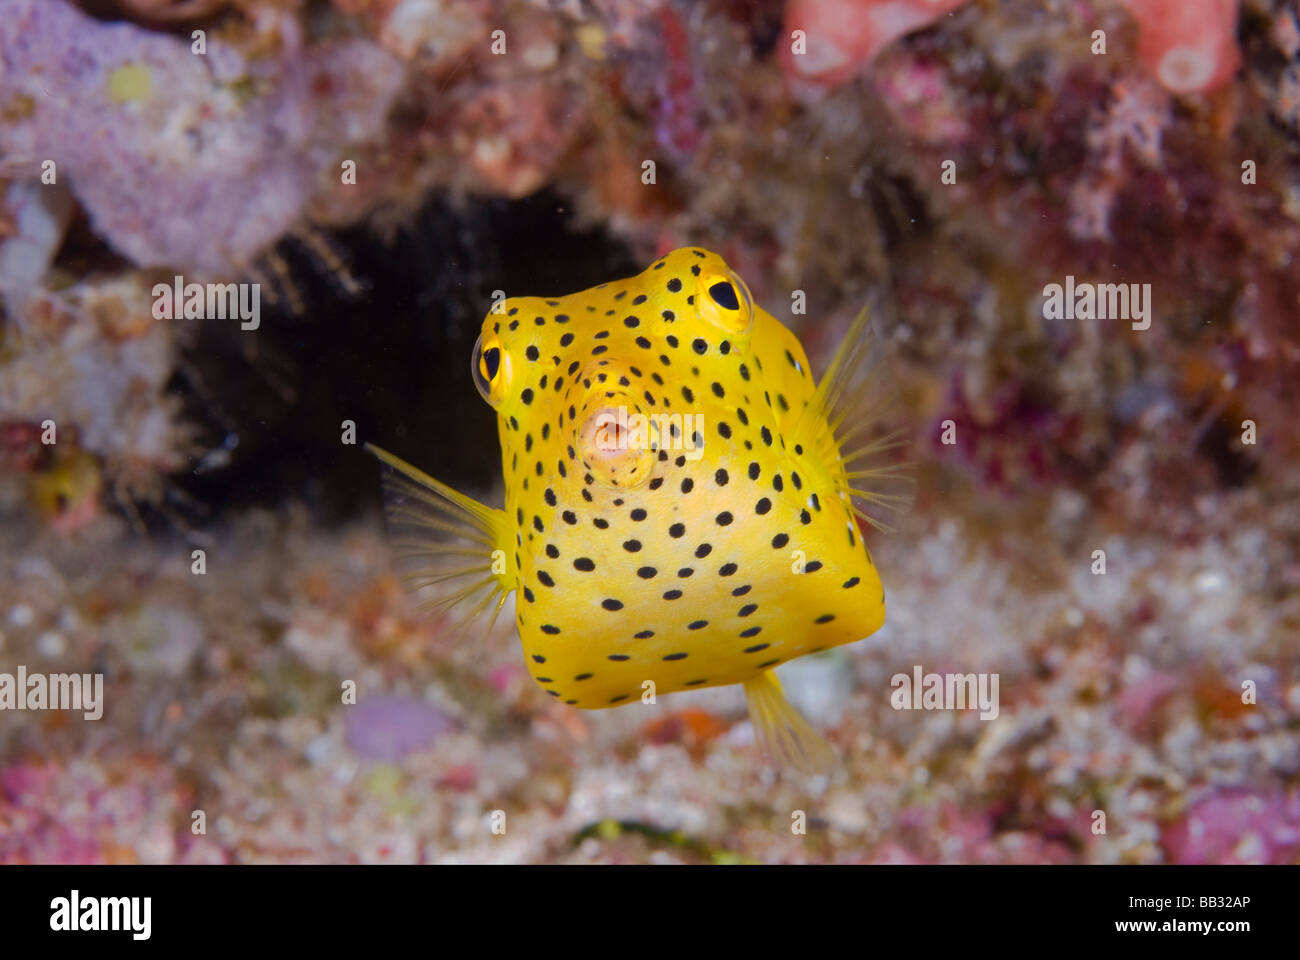 Indian Ocean, Indonesia, Komodo National Park. Close-up of a juvenile boxfish. Stock Photo